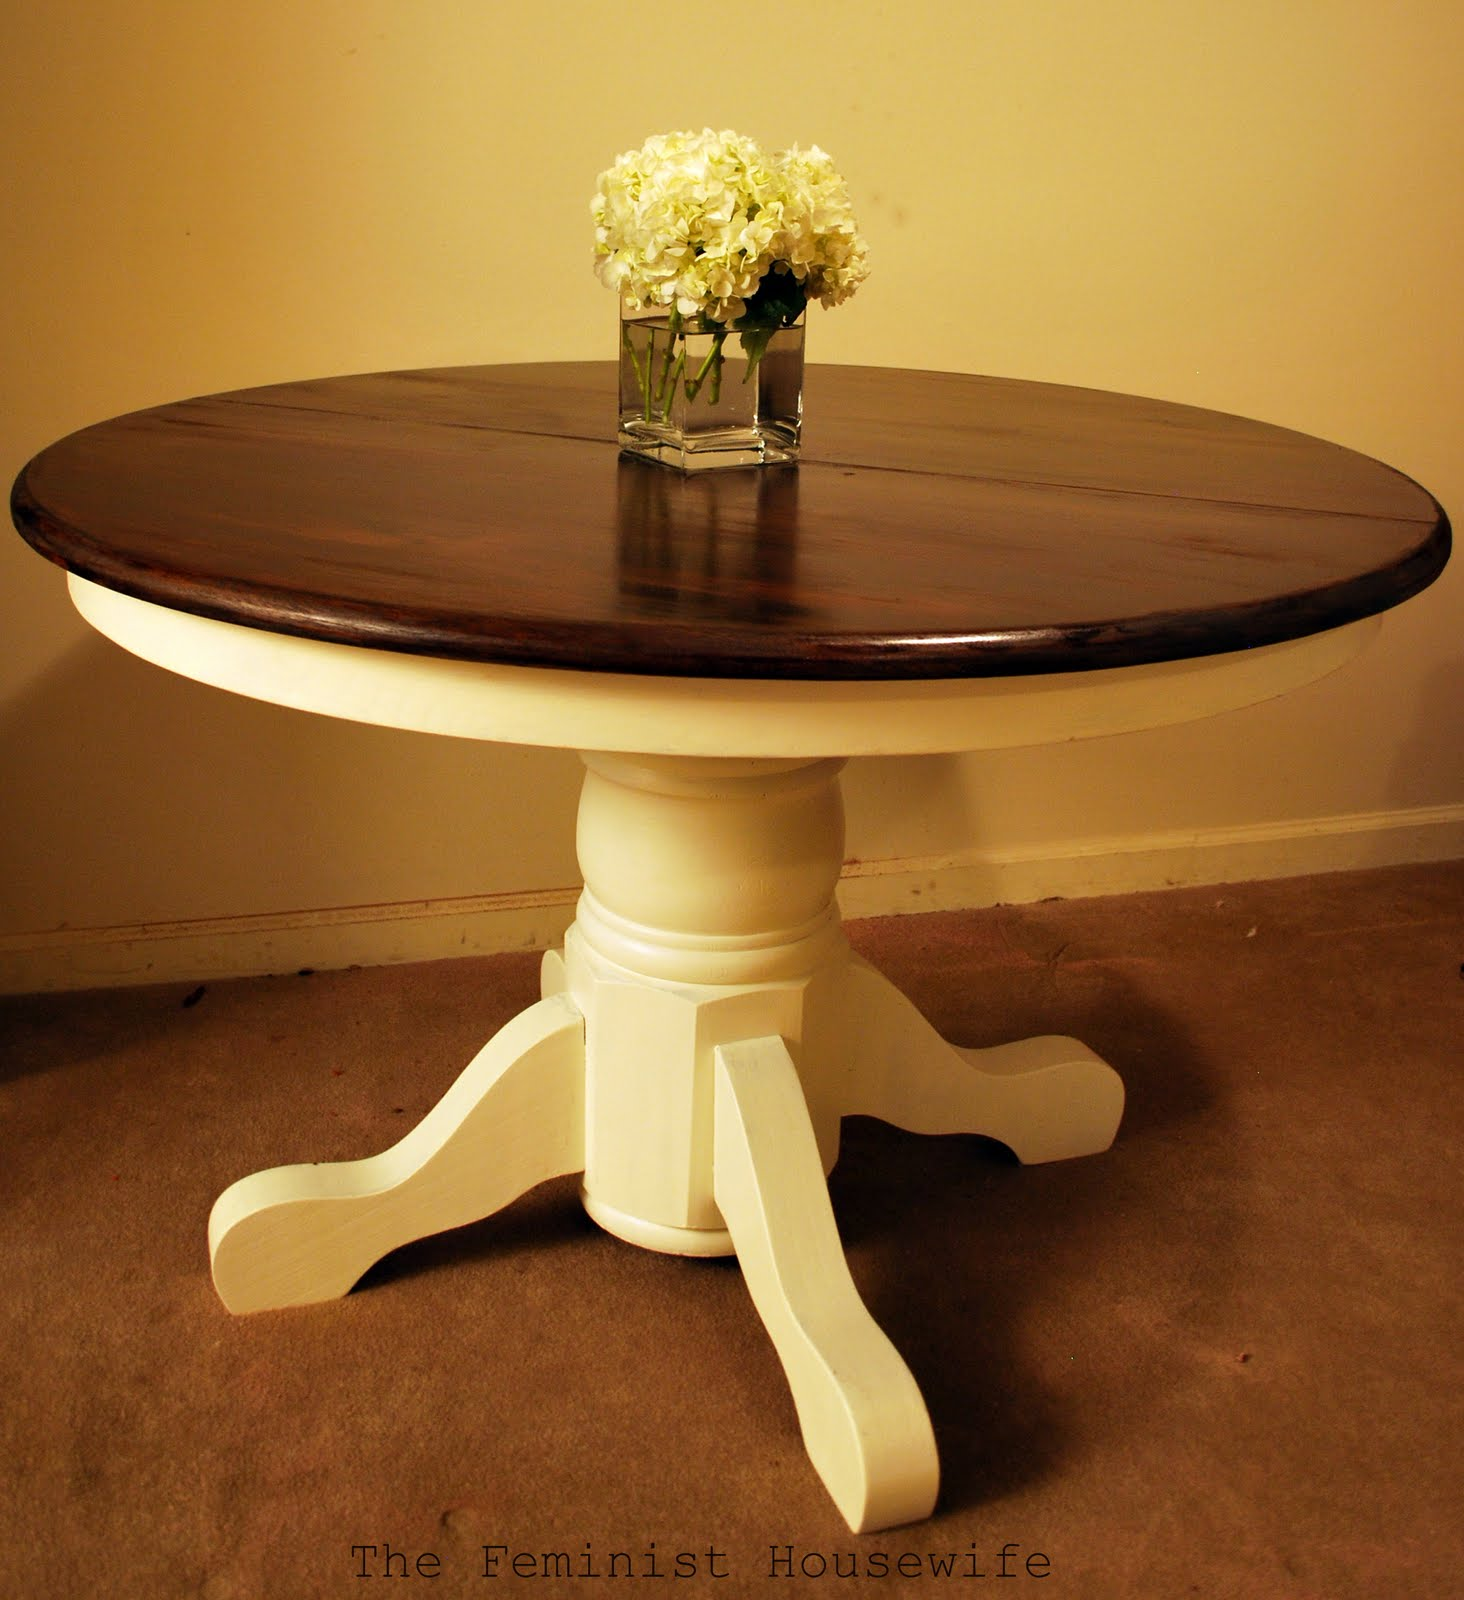 The feminist housewife pedestal table faq for Painted kitchen table ideas